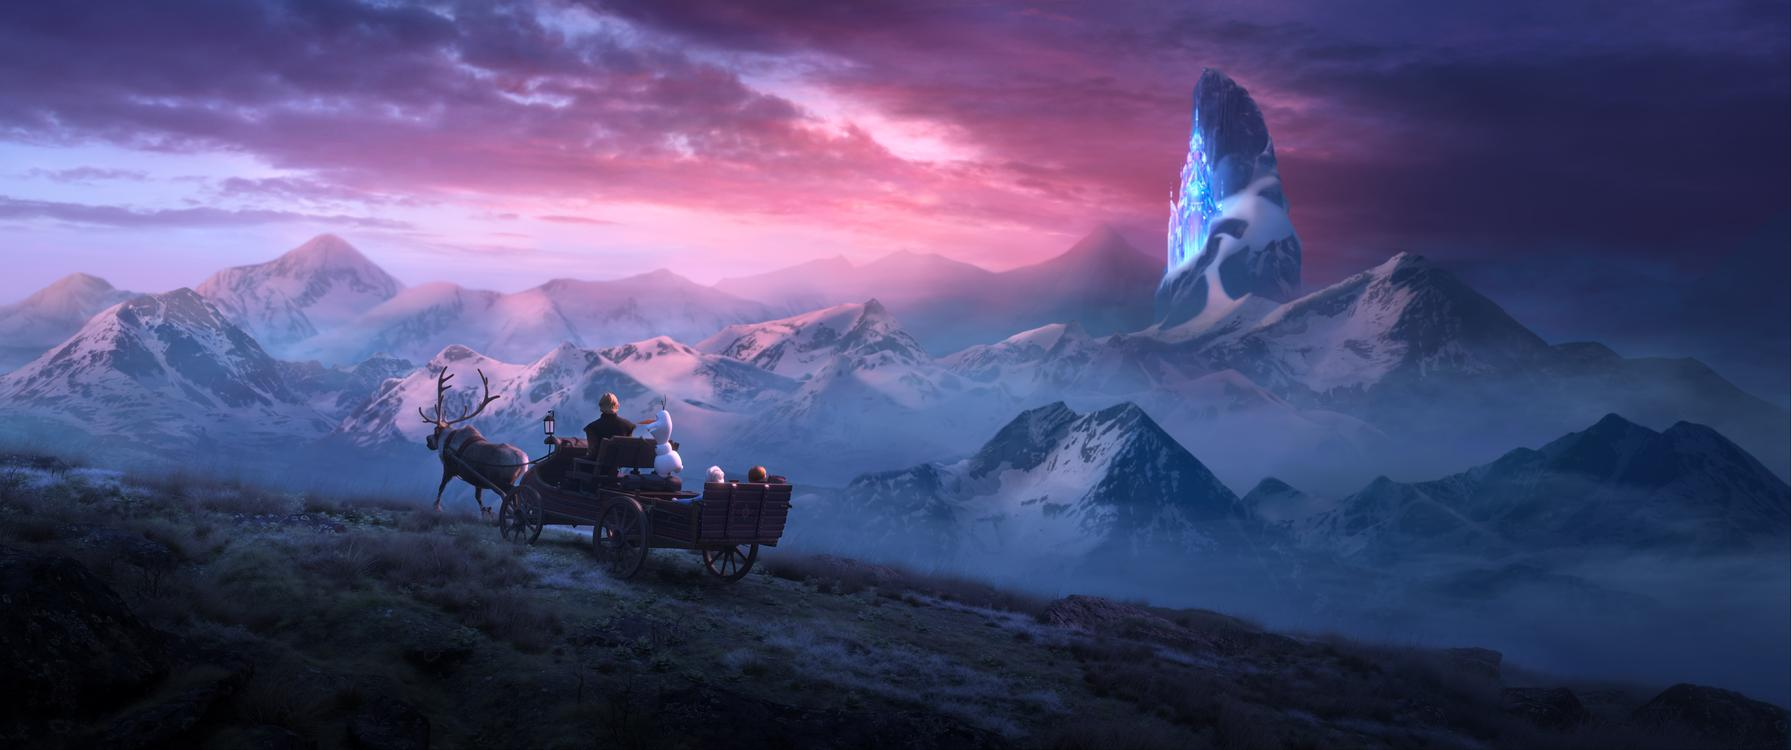 "In Walt Disney Animation Studios' ""Frozen 2, Elsa, Anna, Kristoff, Olaf and Sven journey far beyond the gates of Arendelle in search of answers. Featuring the voices of Idina Menzel, Kristen Bell, Jonathan Groff and Josh Gad, ""Frozen 2"" opens in U.S. theaters November 22. ©2019 Disney. All Rights Reserved."